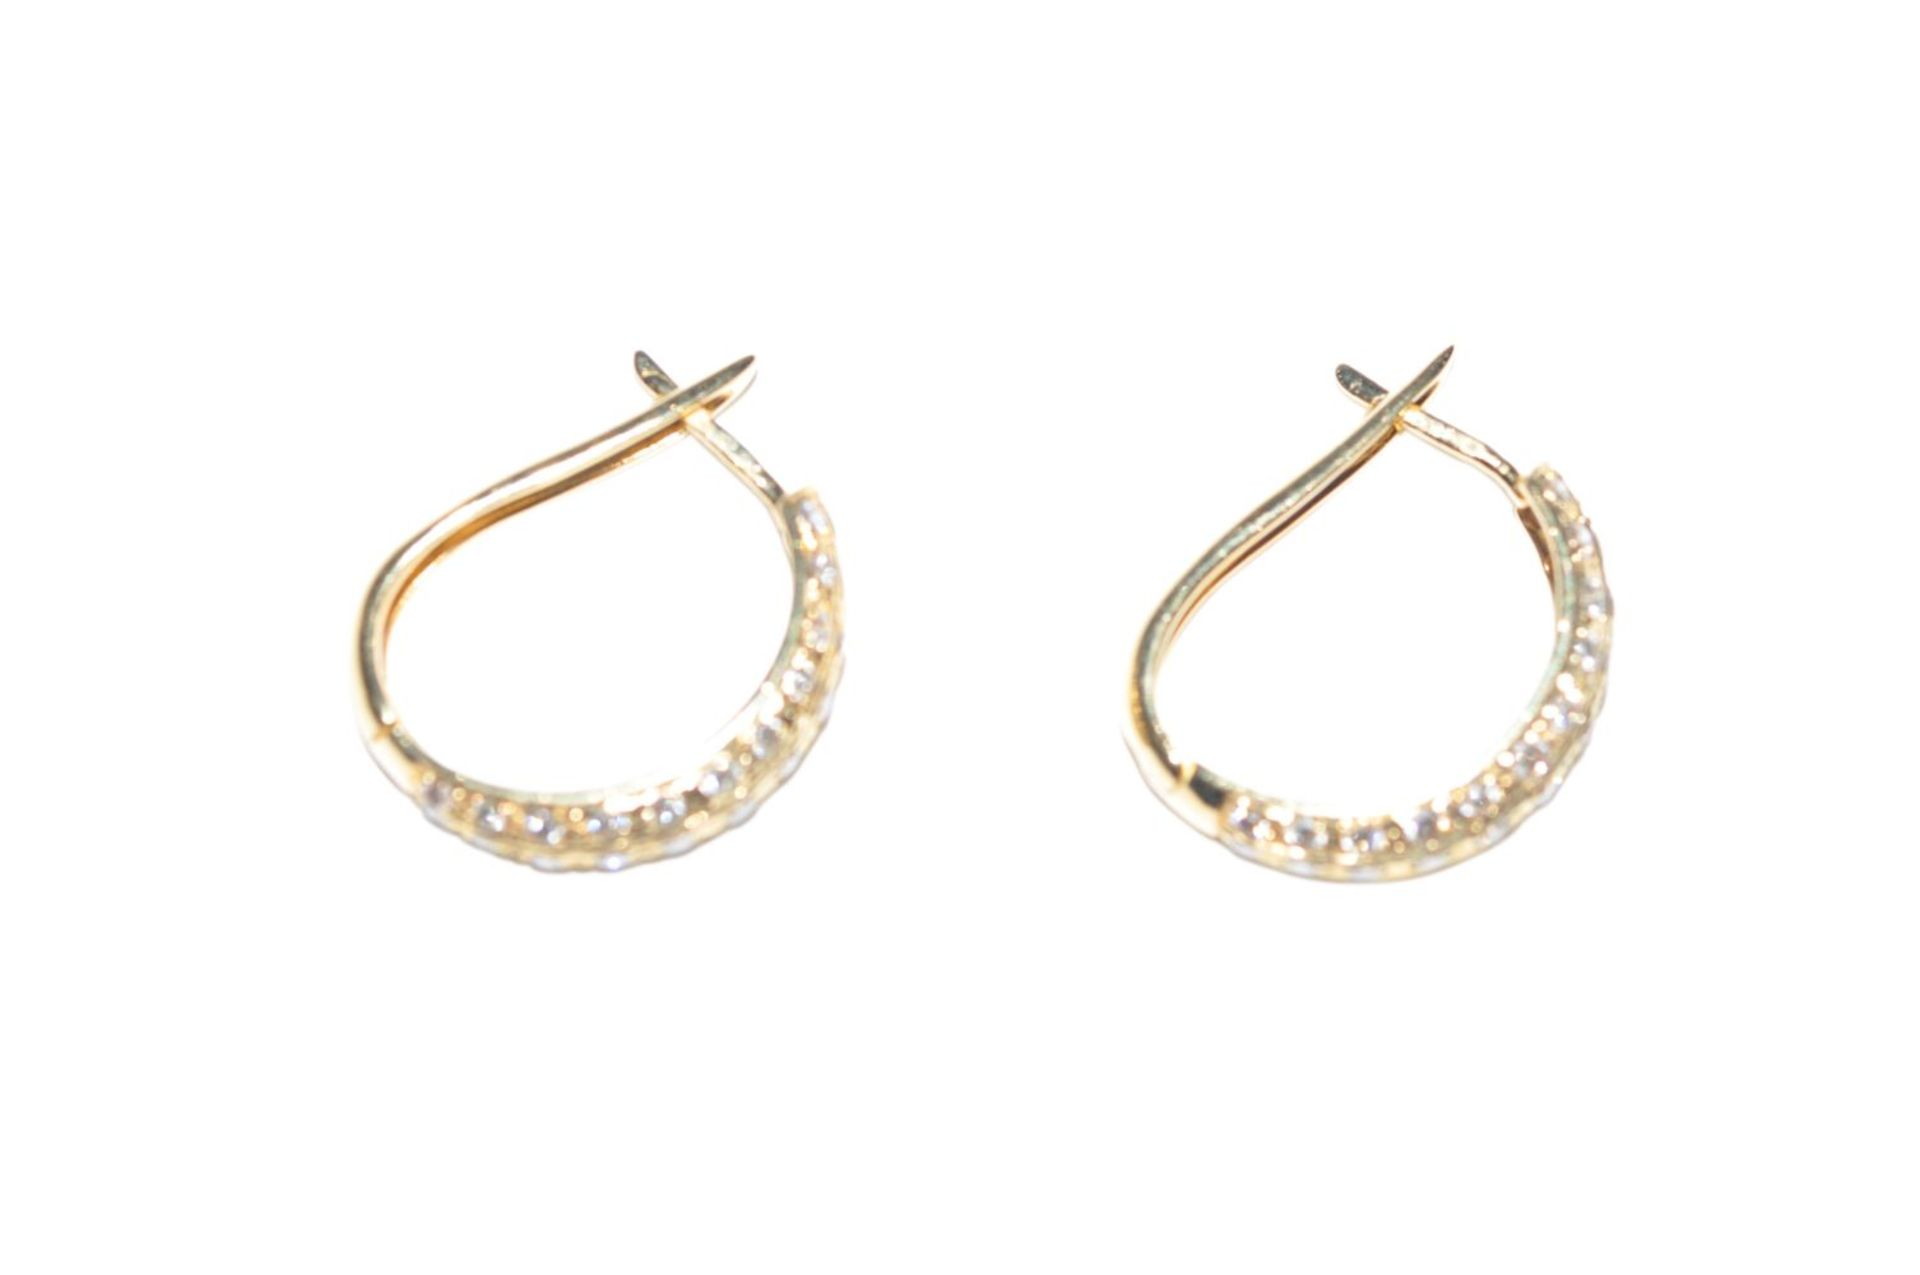 Los 101 - EarringsStud earrings in 750/000 gold, with diamonds, approx. 1.1ct, total weight 4.